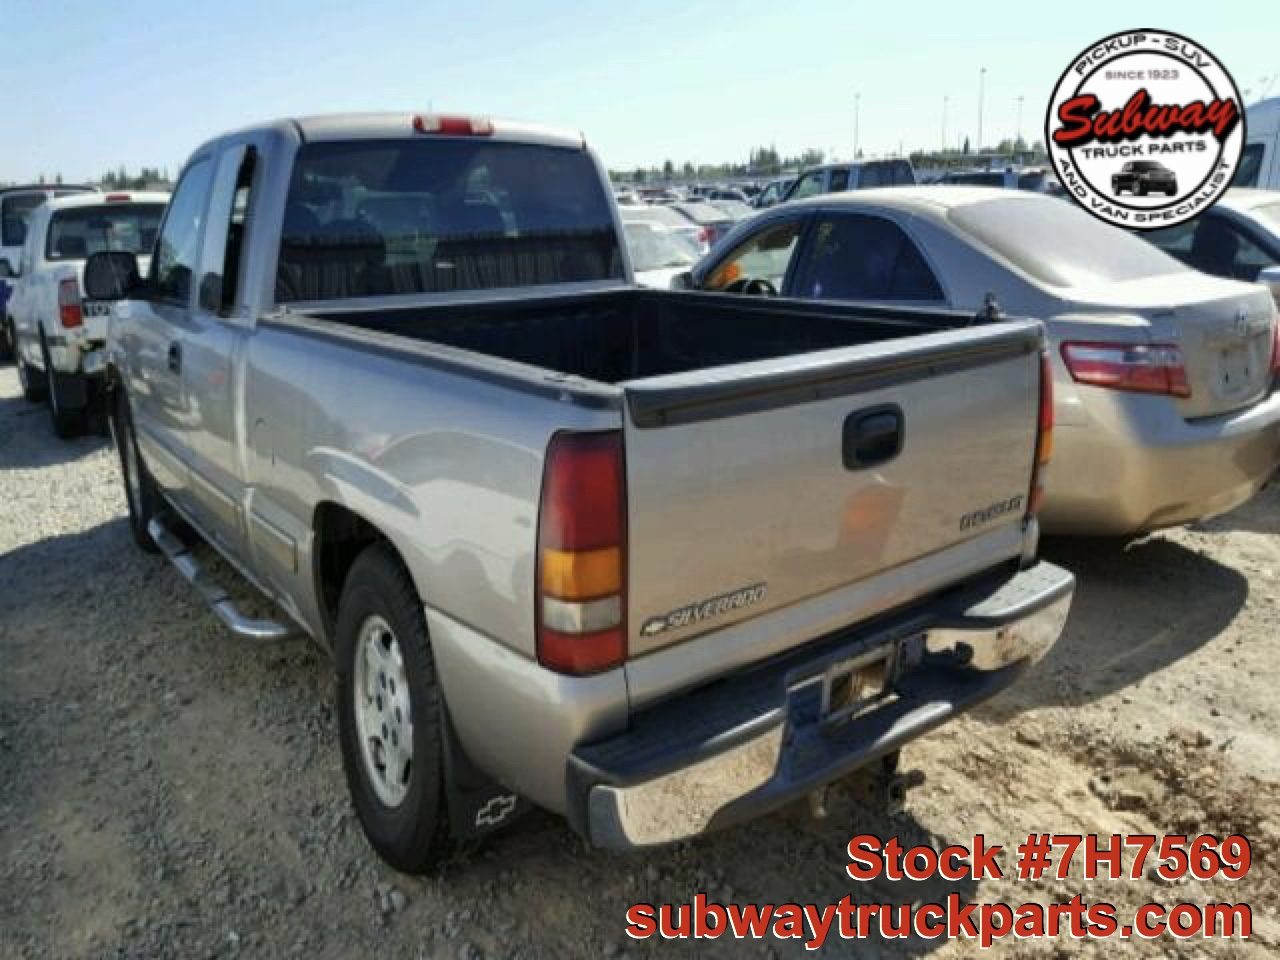 used parts 2001 chevrolet silverado 1500 5 3l 4x2 subway truck parts inc auto recycling. Black Bedroom Furniture Sets. Home Design Ideas